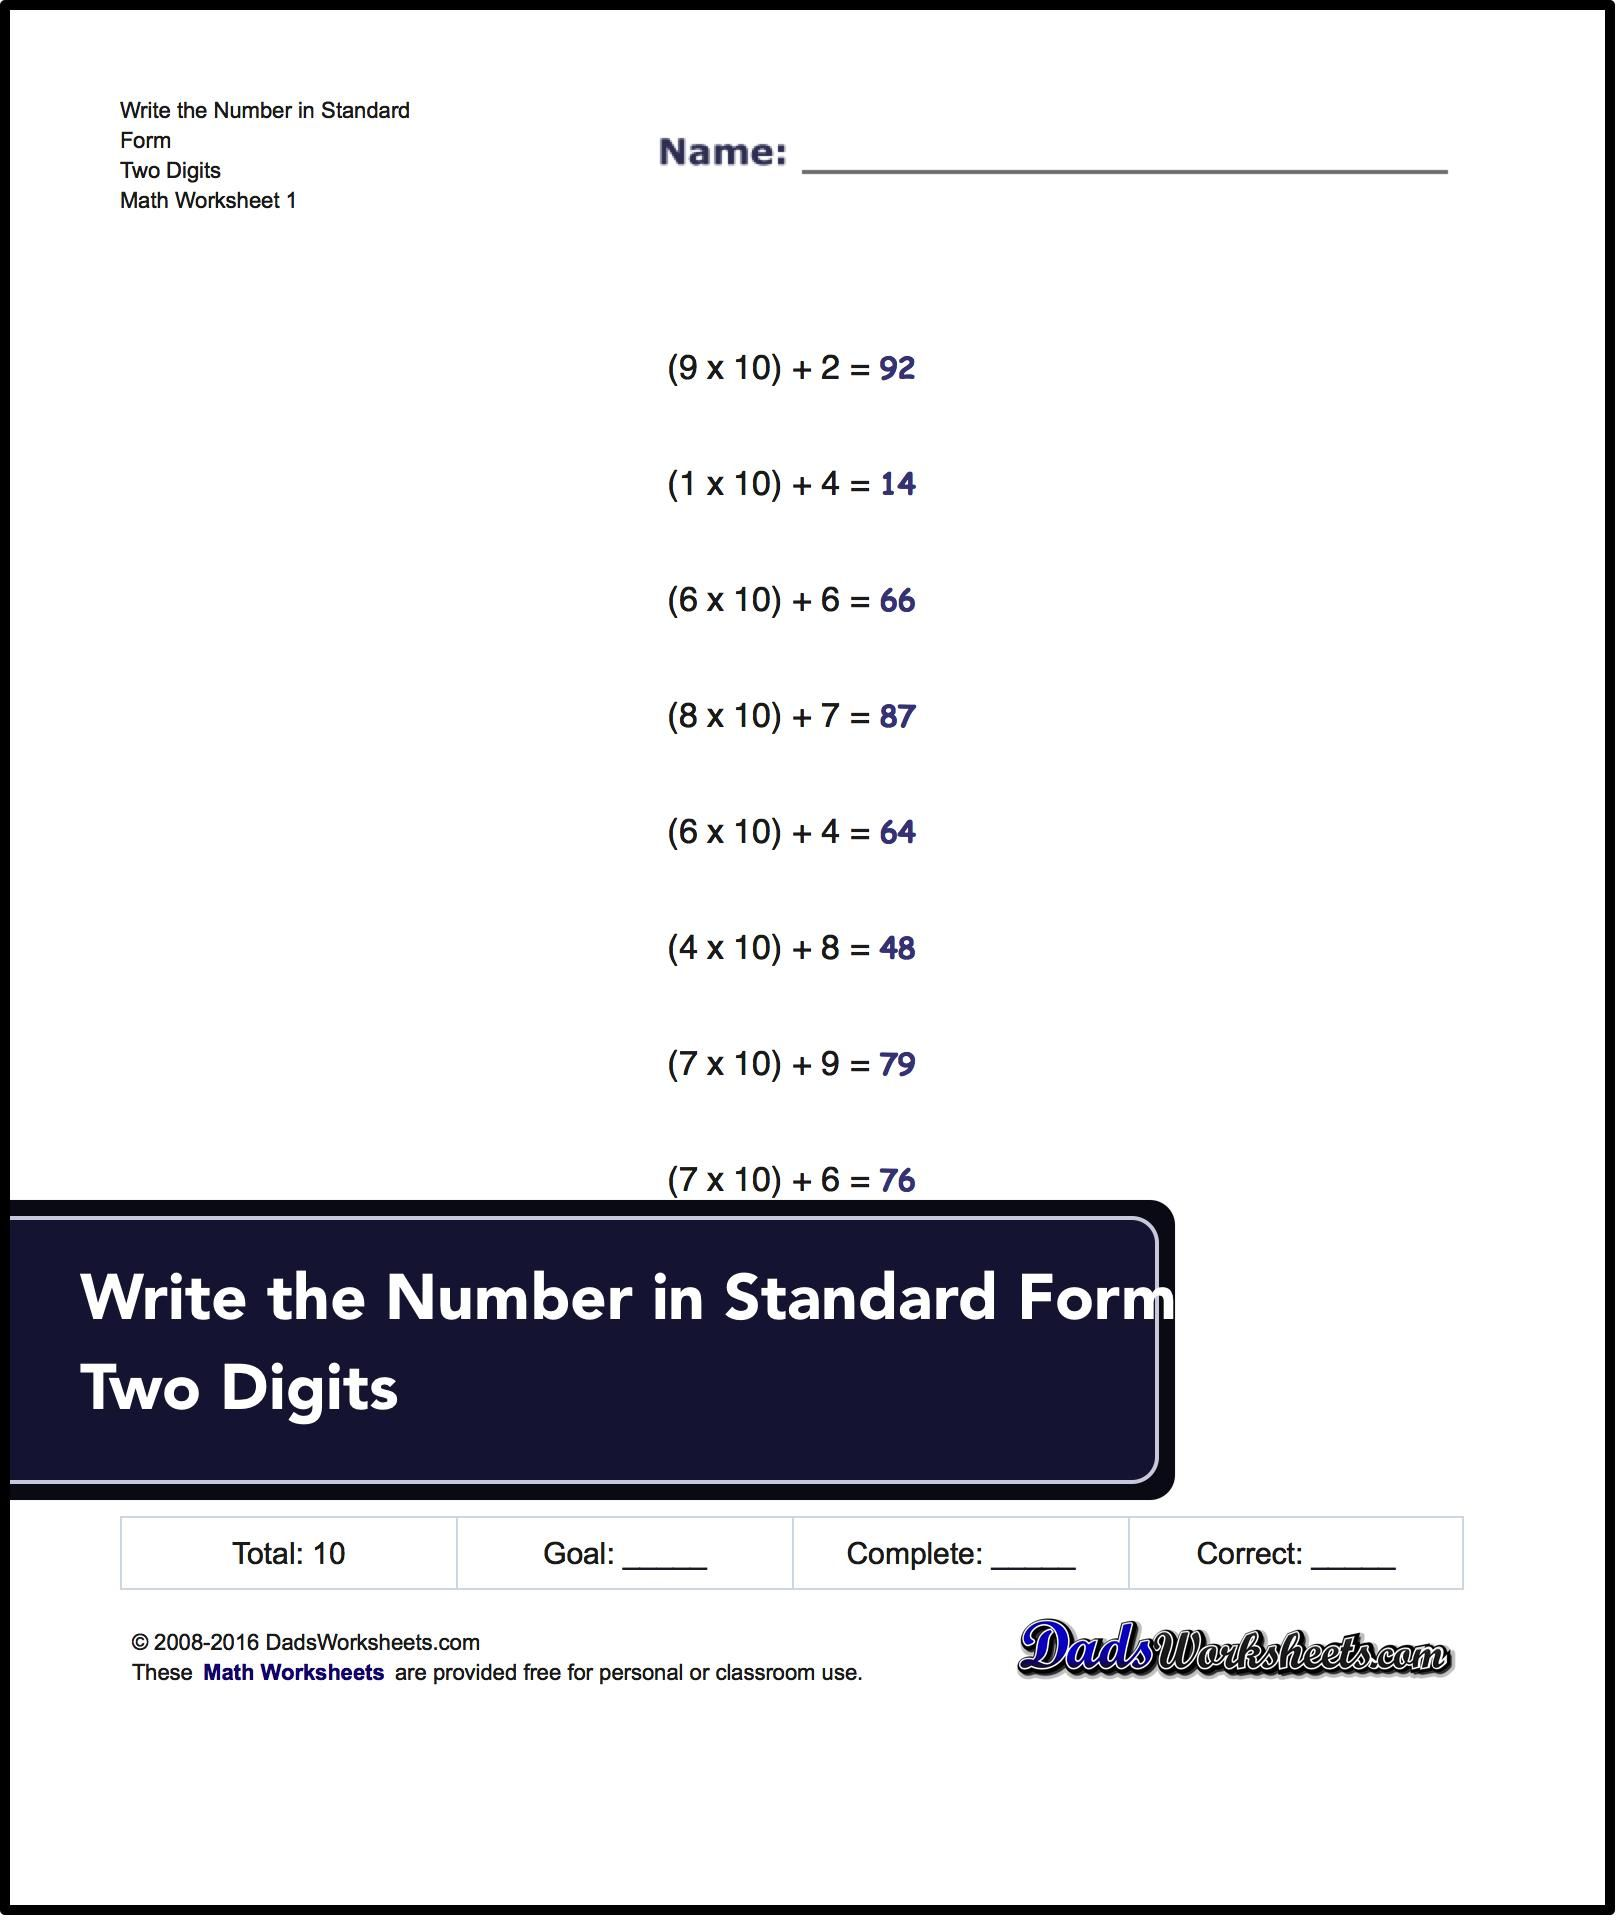 Practice expanded form worksheets for converting numbers from practice expanded form worksheets for converting numbers from standard numeric notation into expanded place value form falaconquin